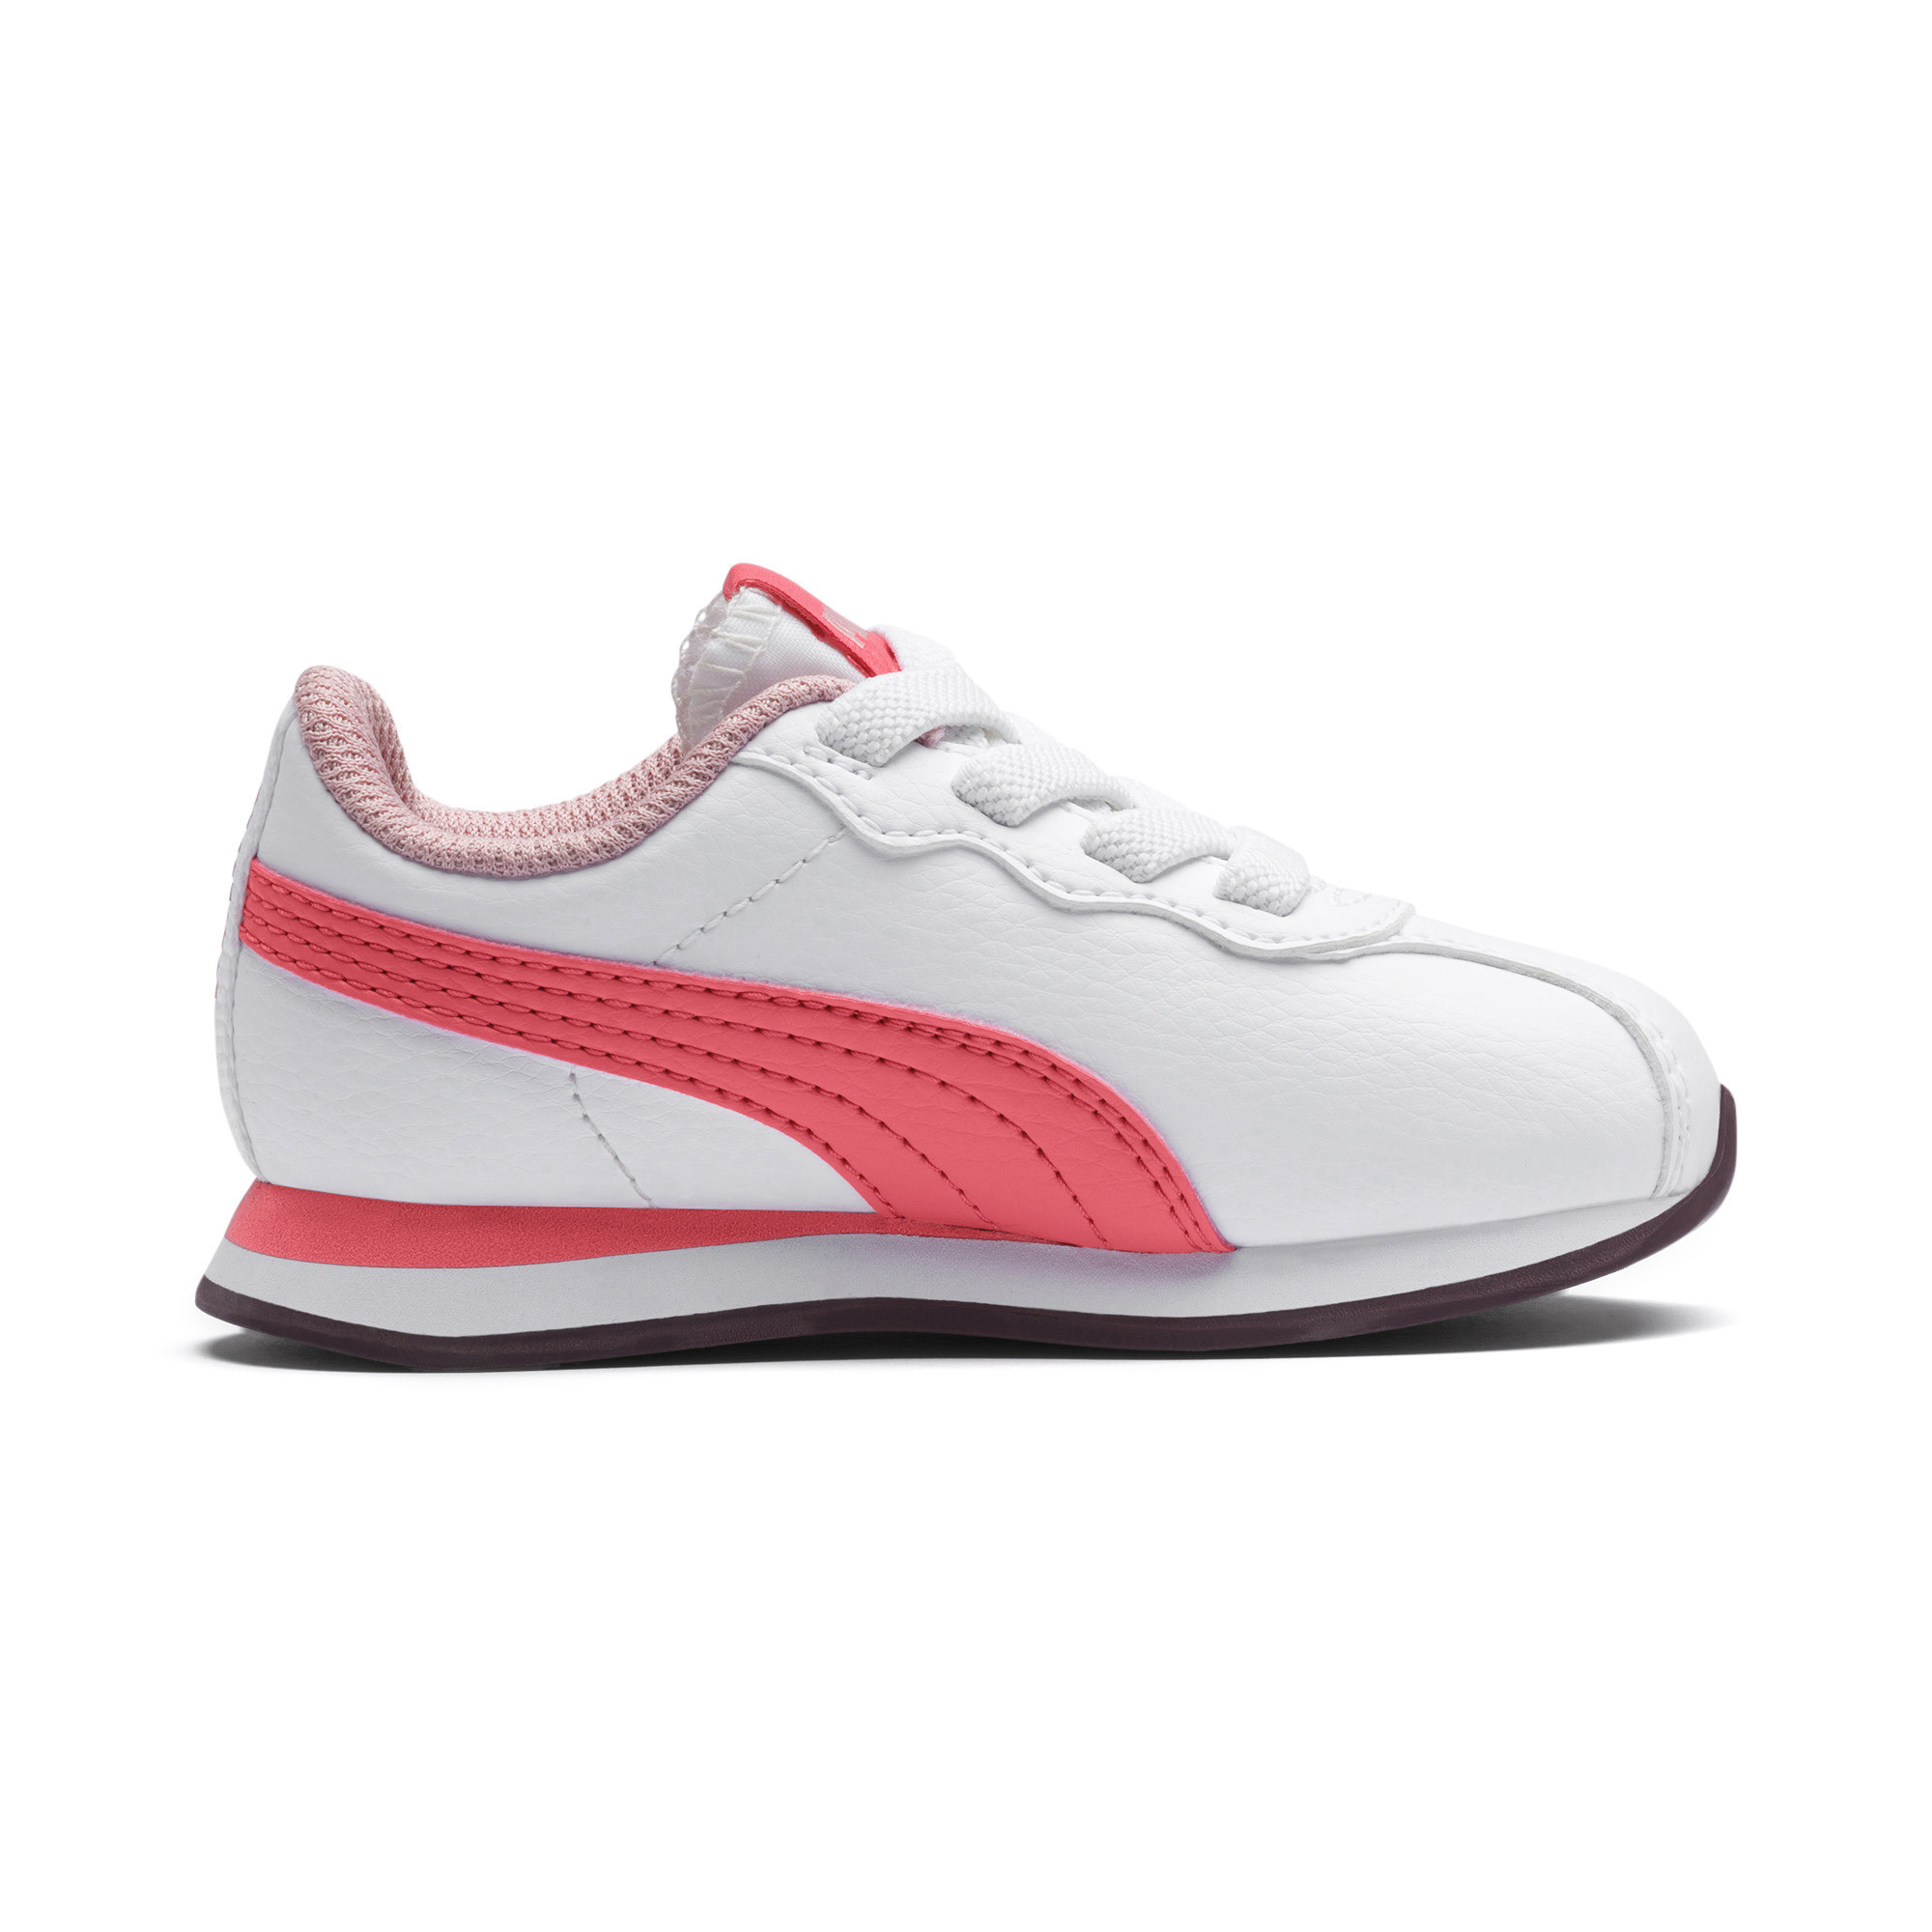 PUMA-Turin-II-AC-Toddler-Shoes-Kids-Shoe-Kids thumbnail 18